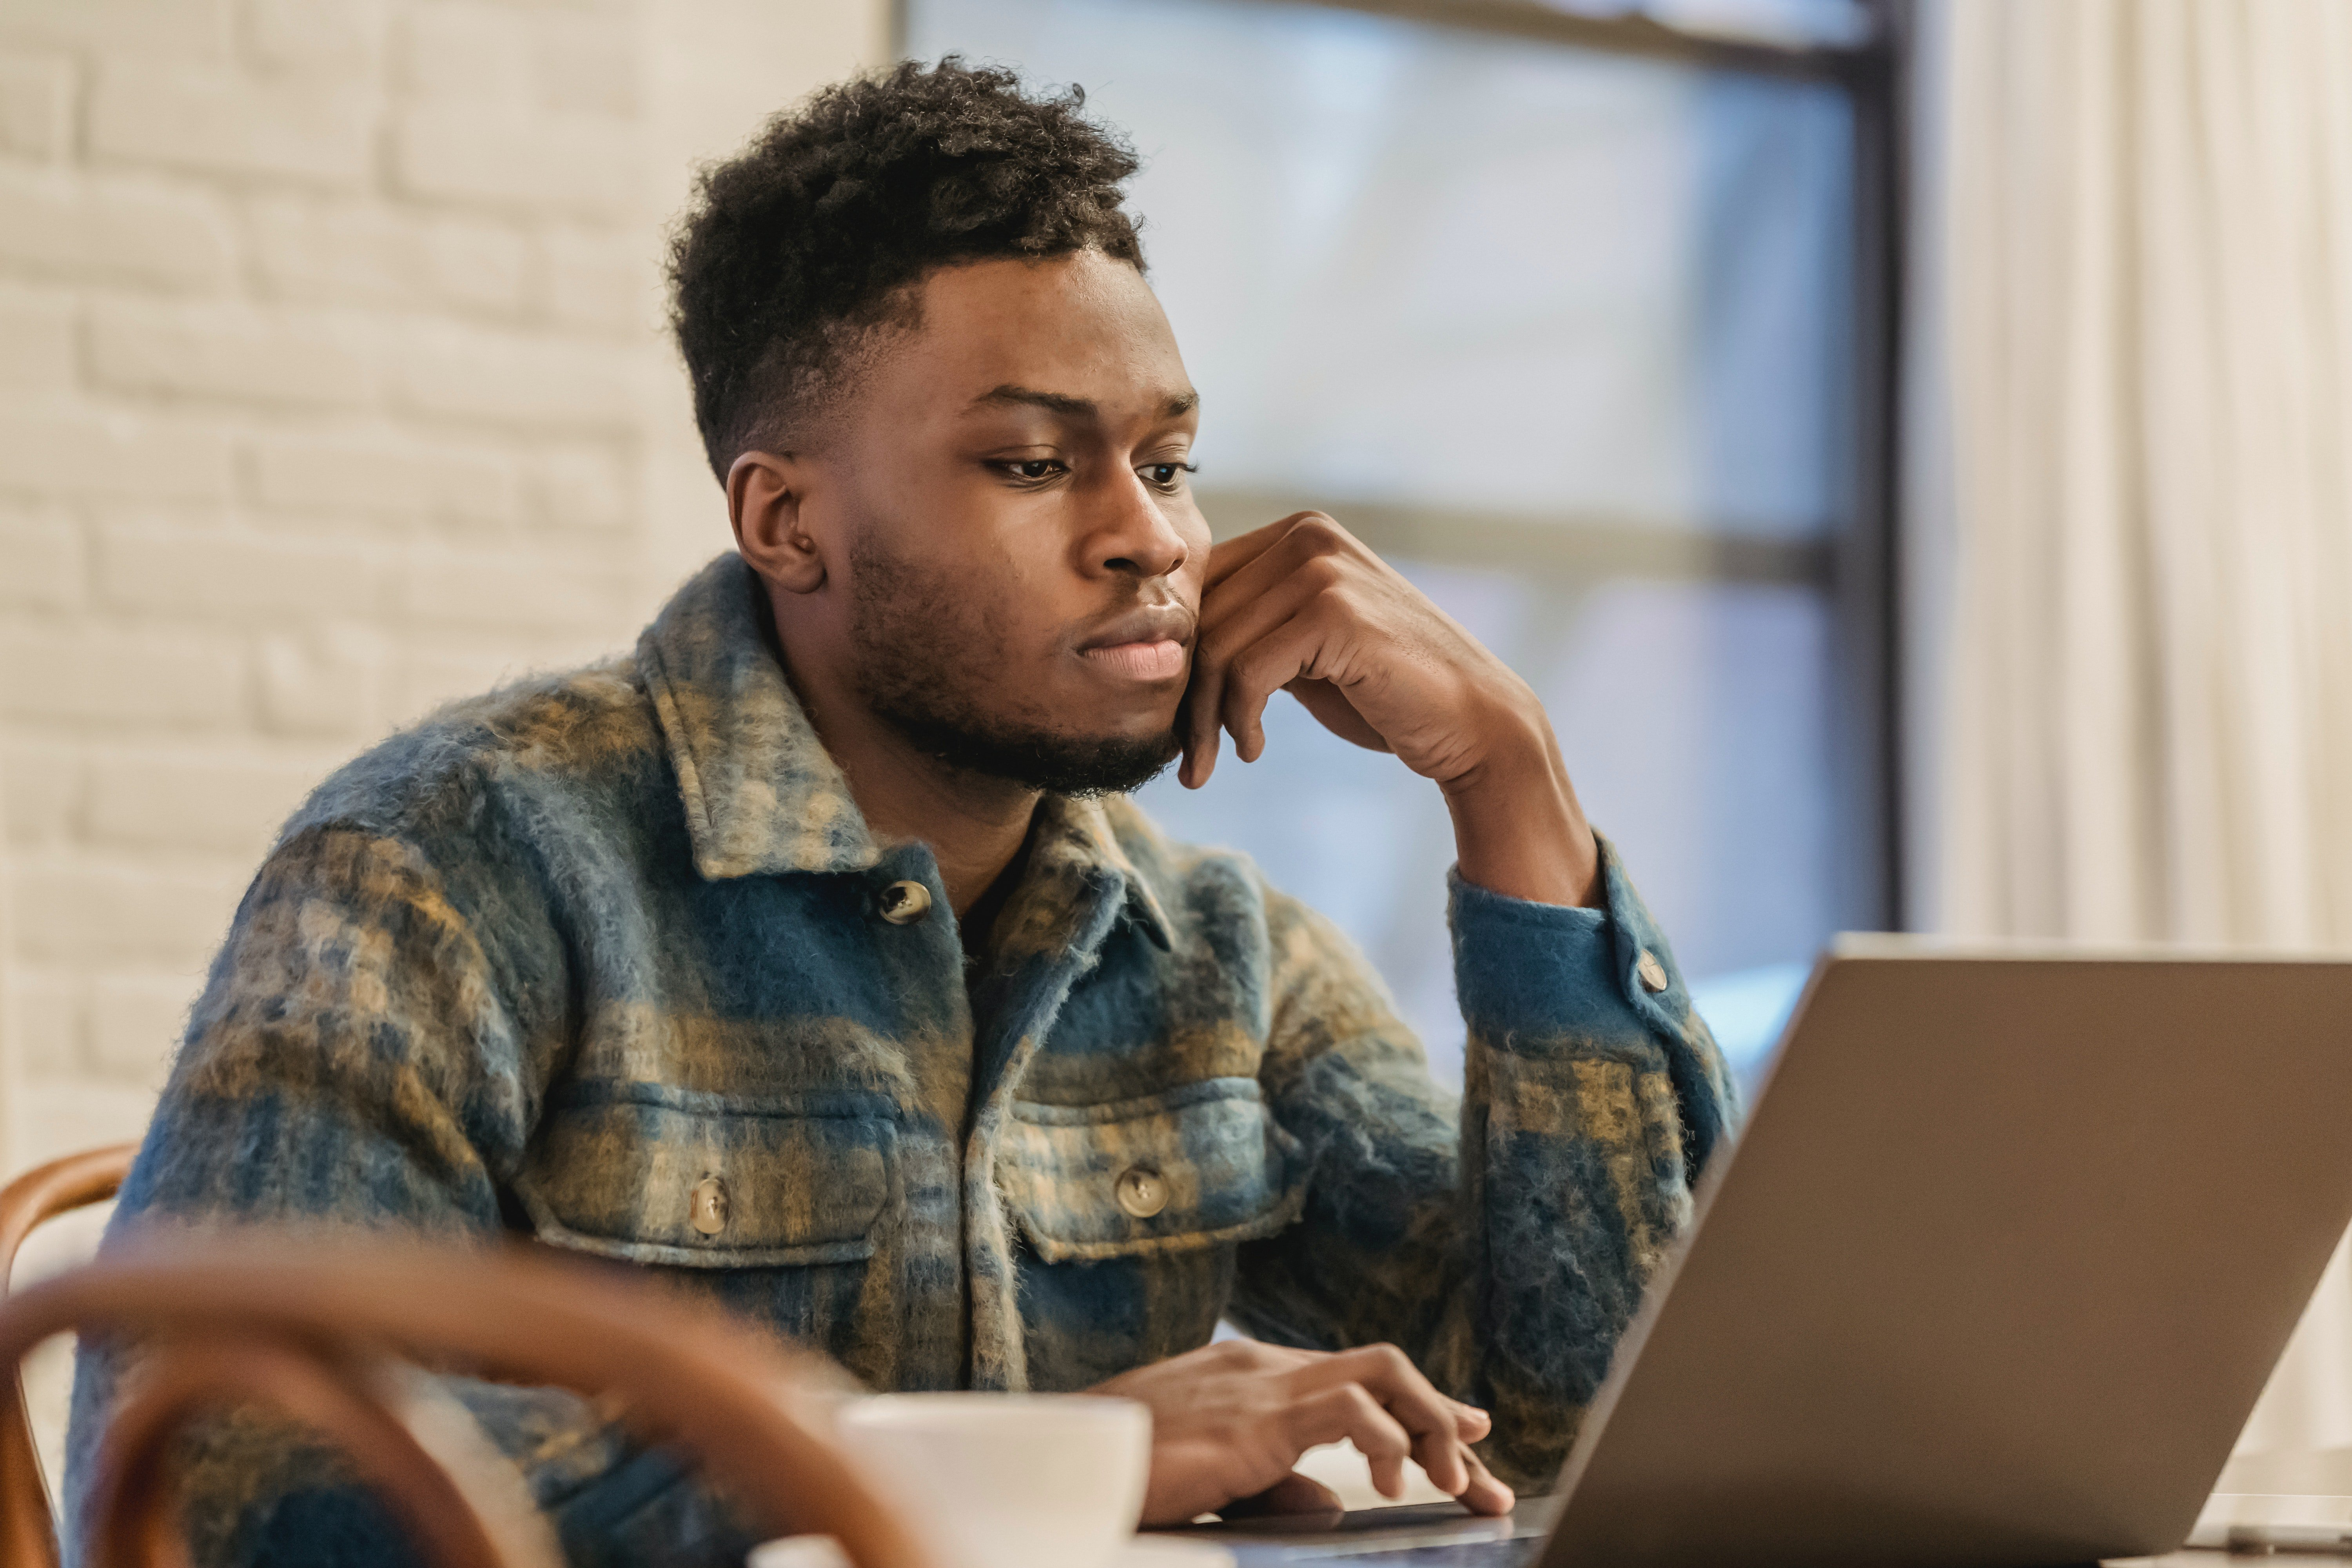 Pictured - A young man working on a laptop | Source: Pexels